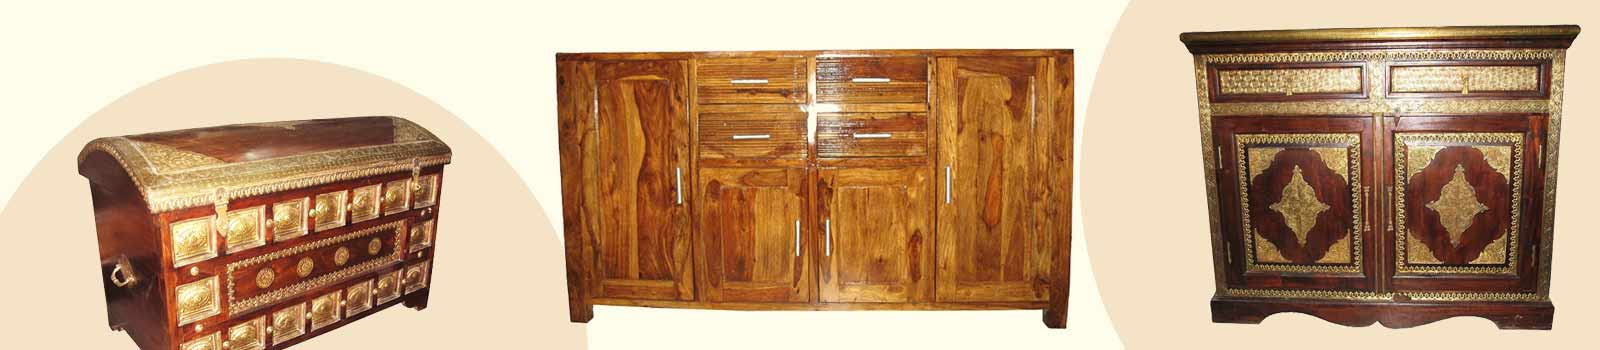 ... High quality & beautiful solid wood furniture ...